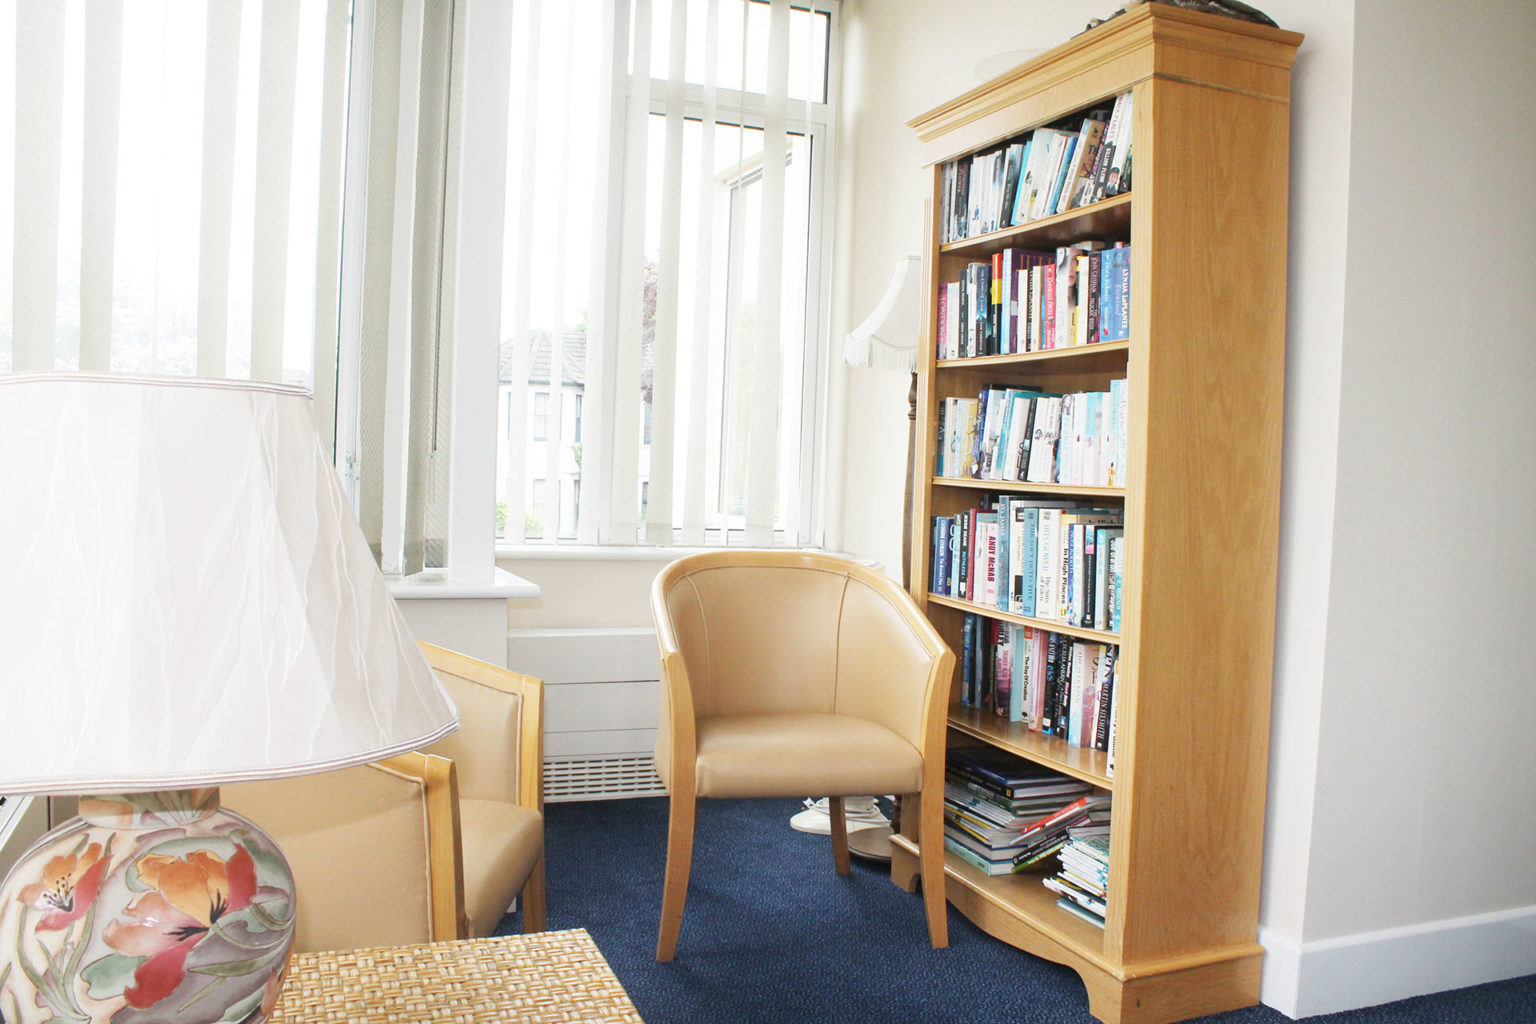 Lawnbrook Care Home Library